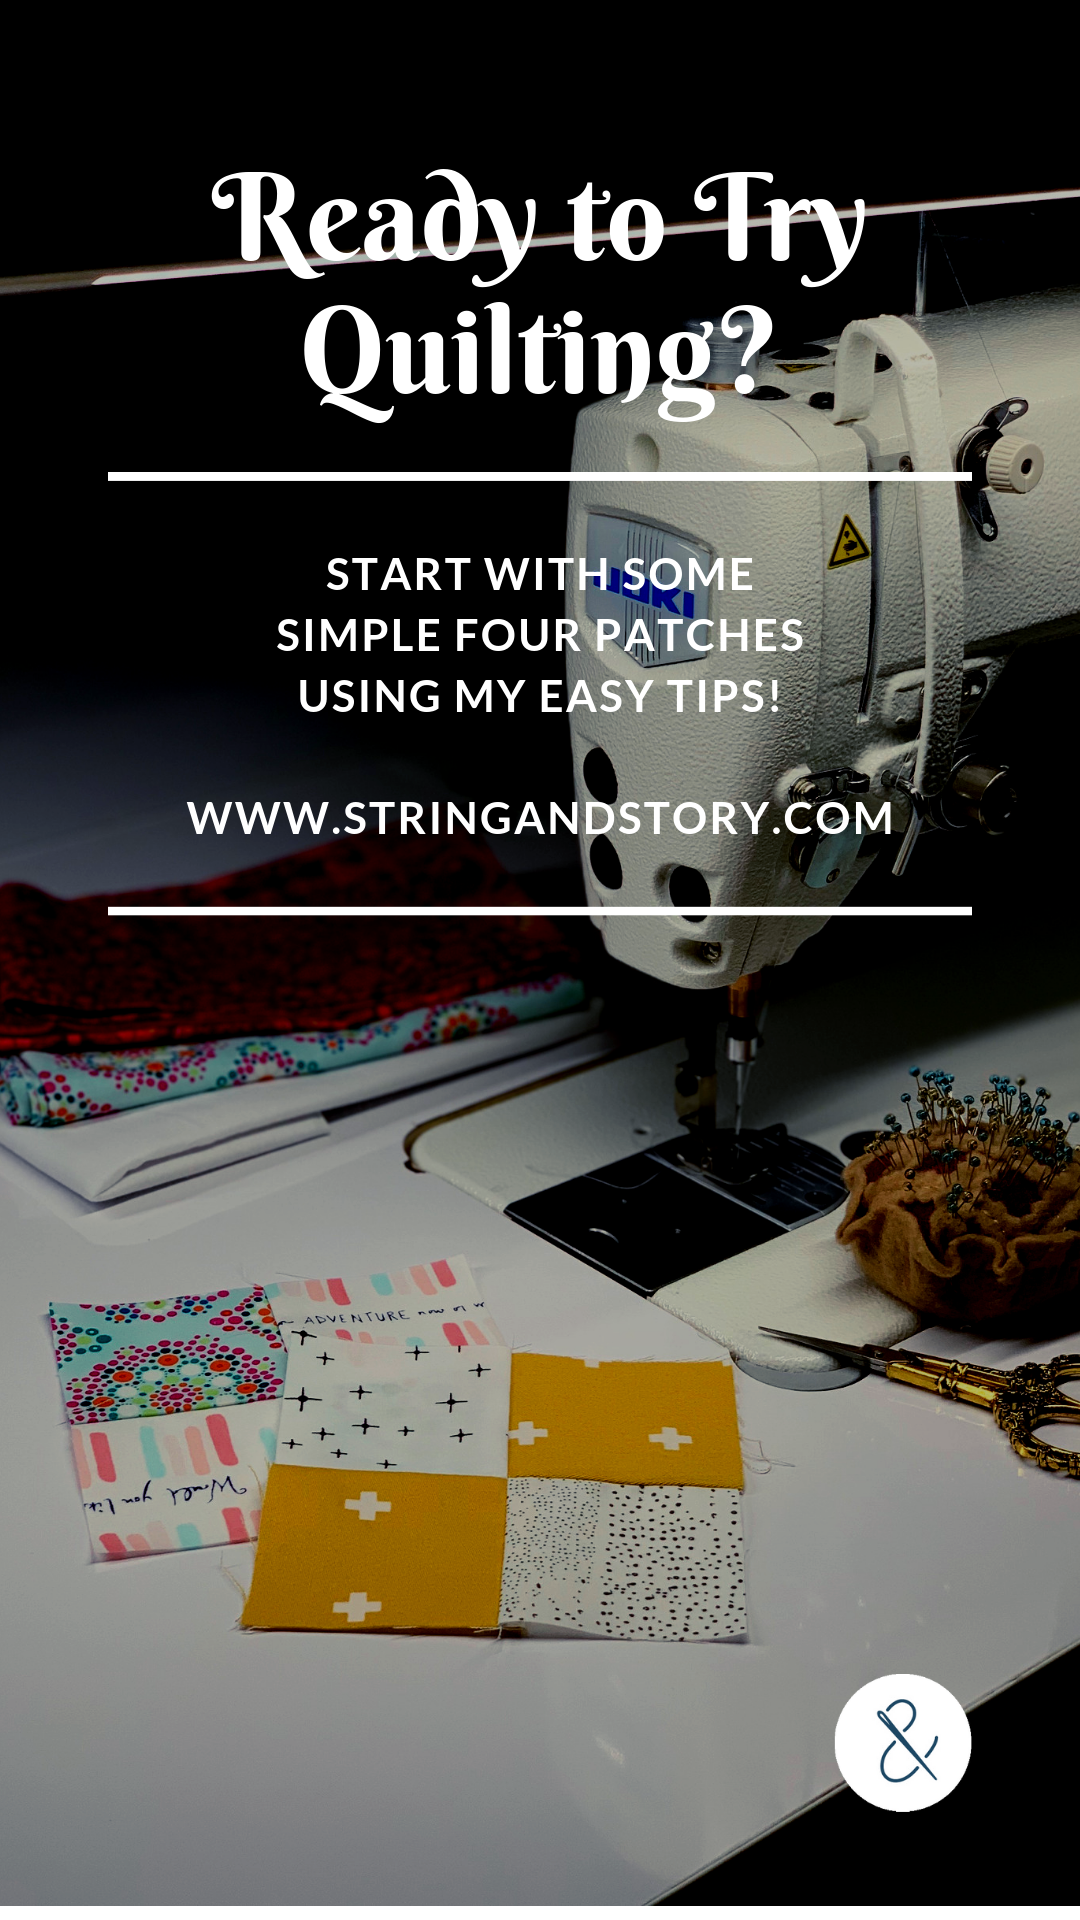 Quilting is a wonderful hobby-- relaxing yet interesting, challenging yet fun. But knowing where to start can be hard. Come take a stab at your first four patch with my easy, friendly tutorial! C'mon-- click on thru!